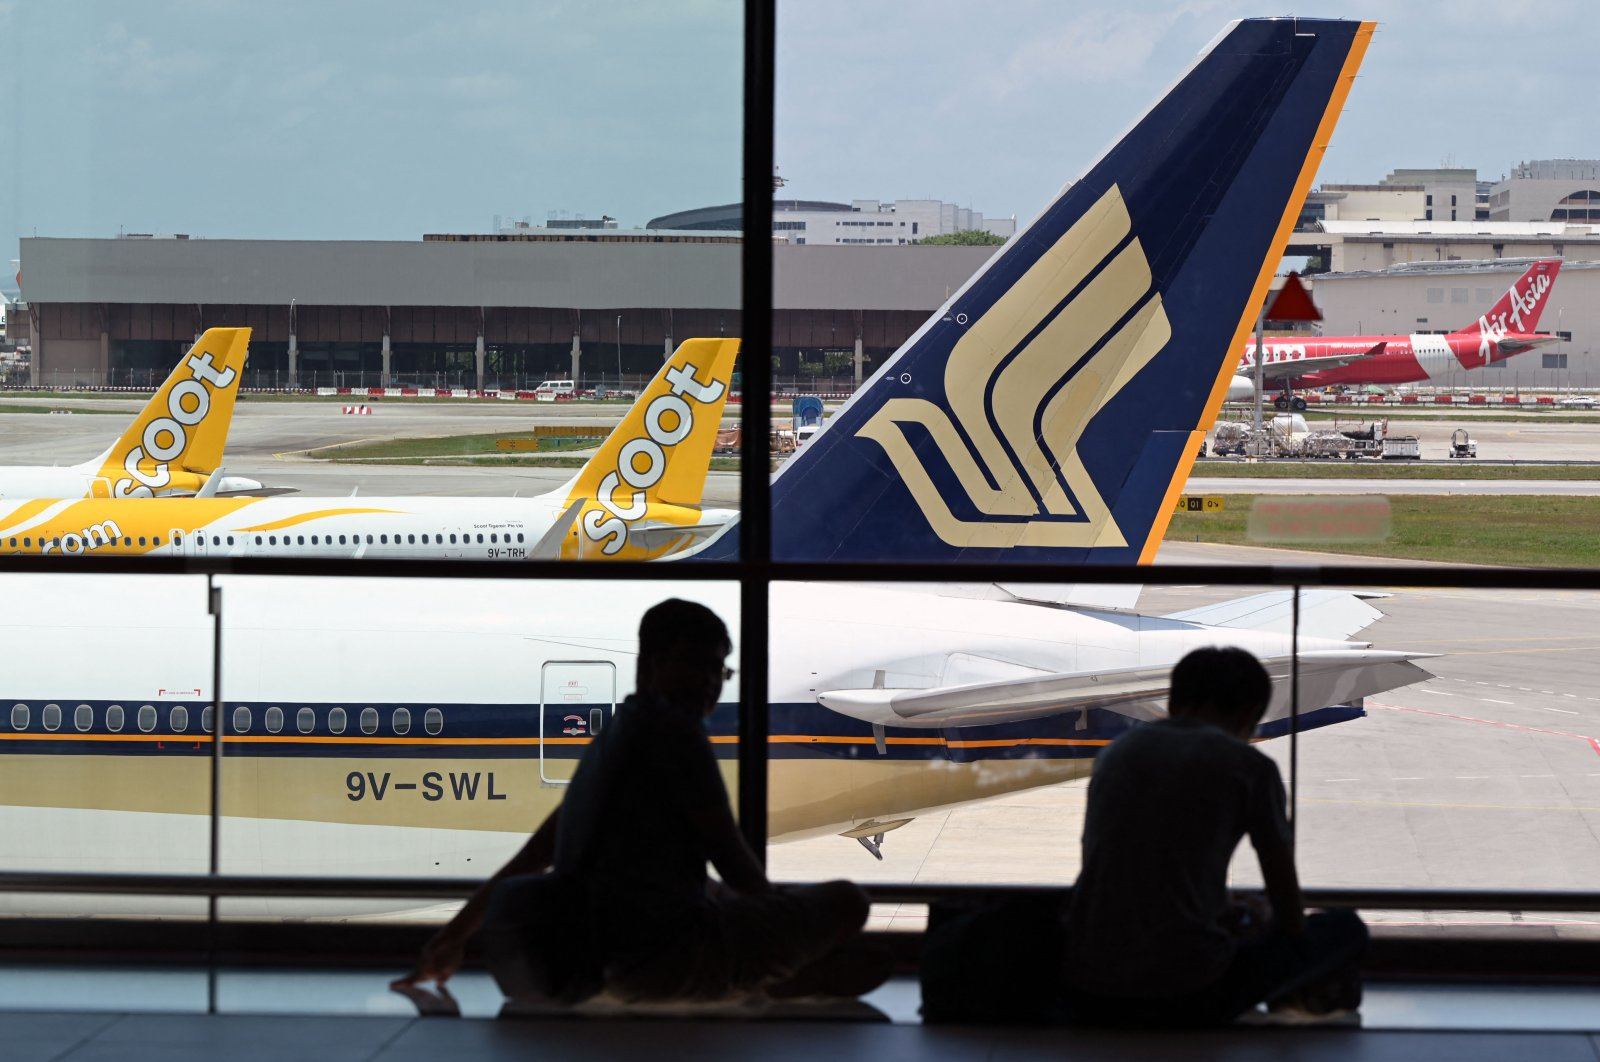 A Singapore Airlines plane is parked beside Scoots passenger planes on the terminal tarmac at Changi International Airport in Singapore, March 15, 2021. (AFP Photo)